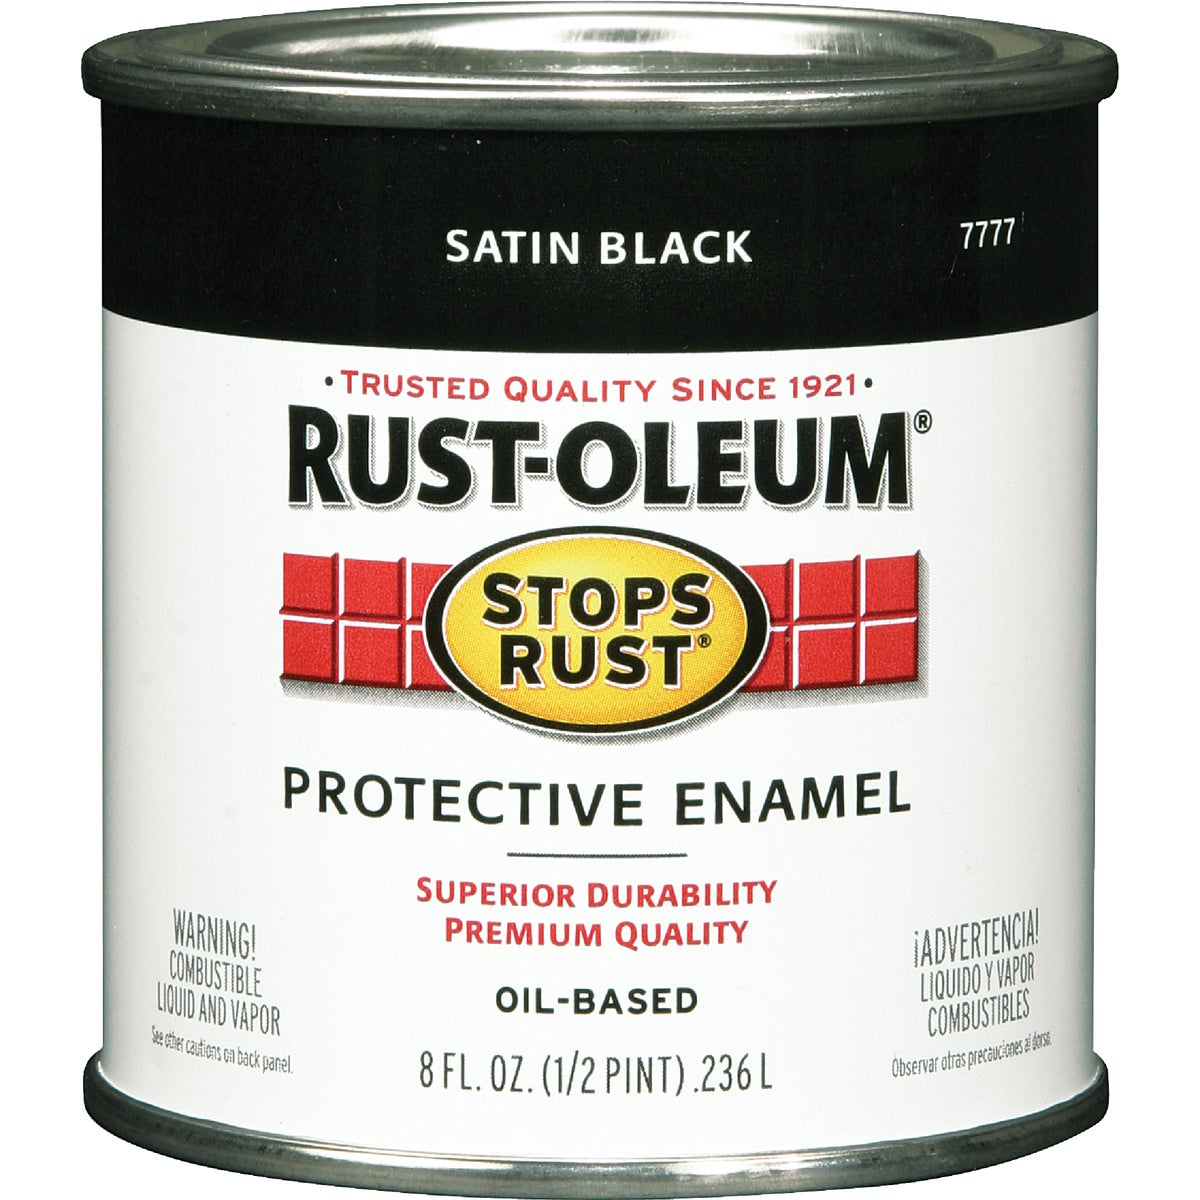 SATIN BLACK ENAMEL - 7777-730 by Rustoleum